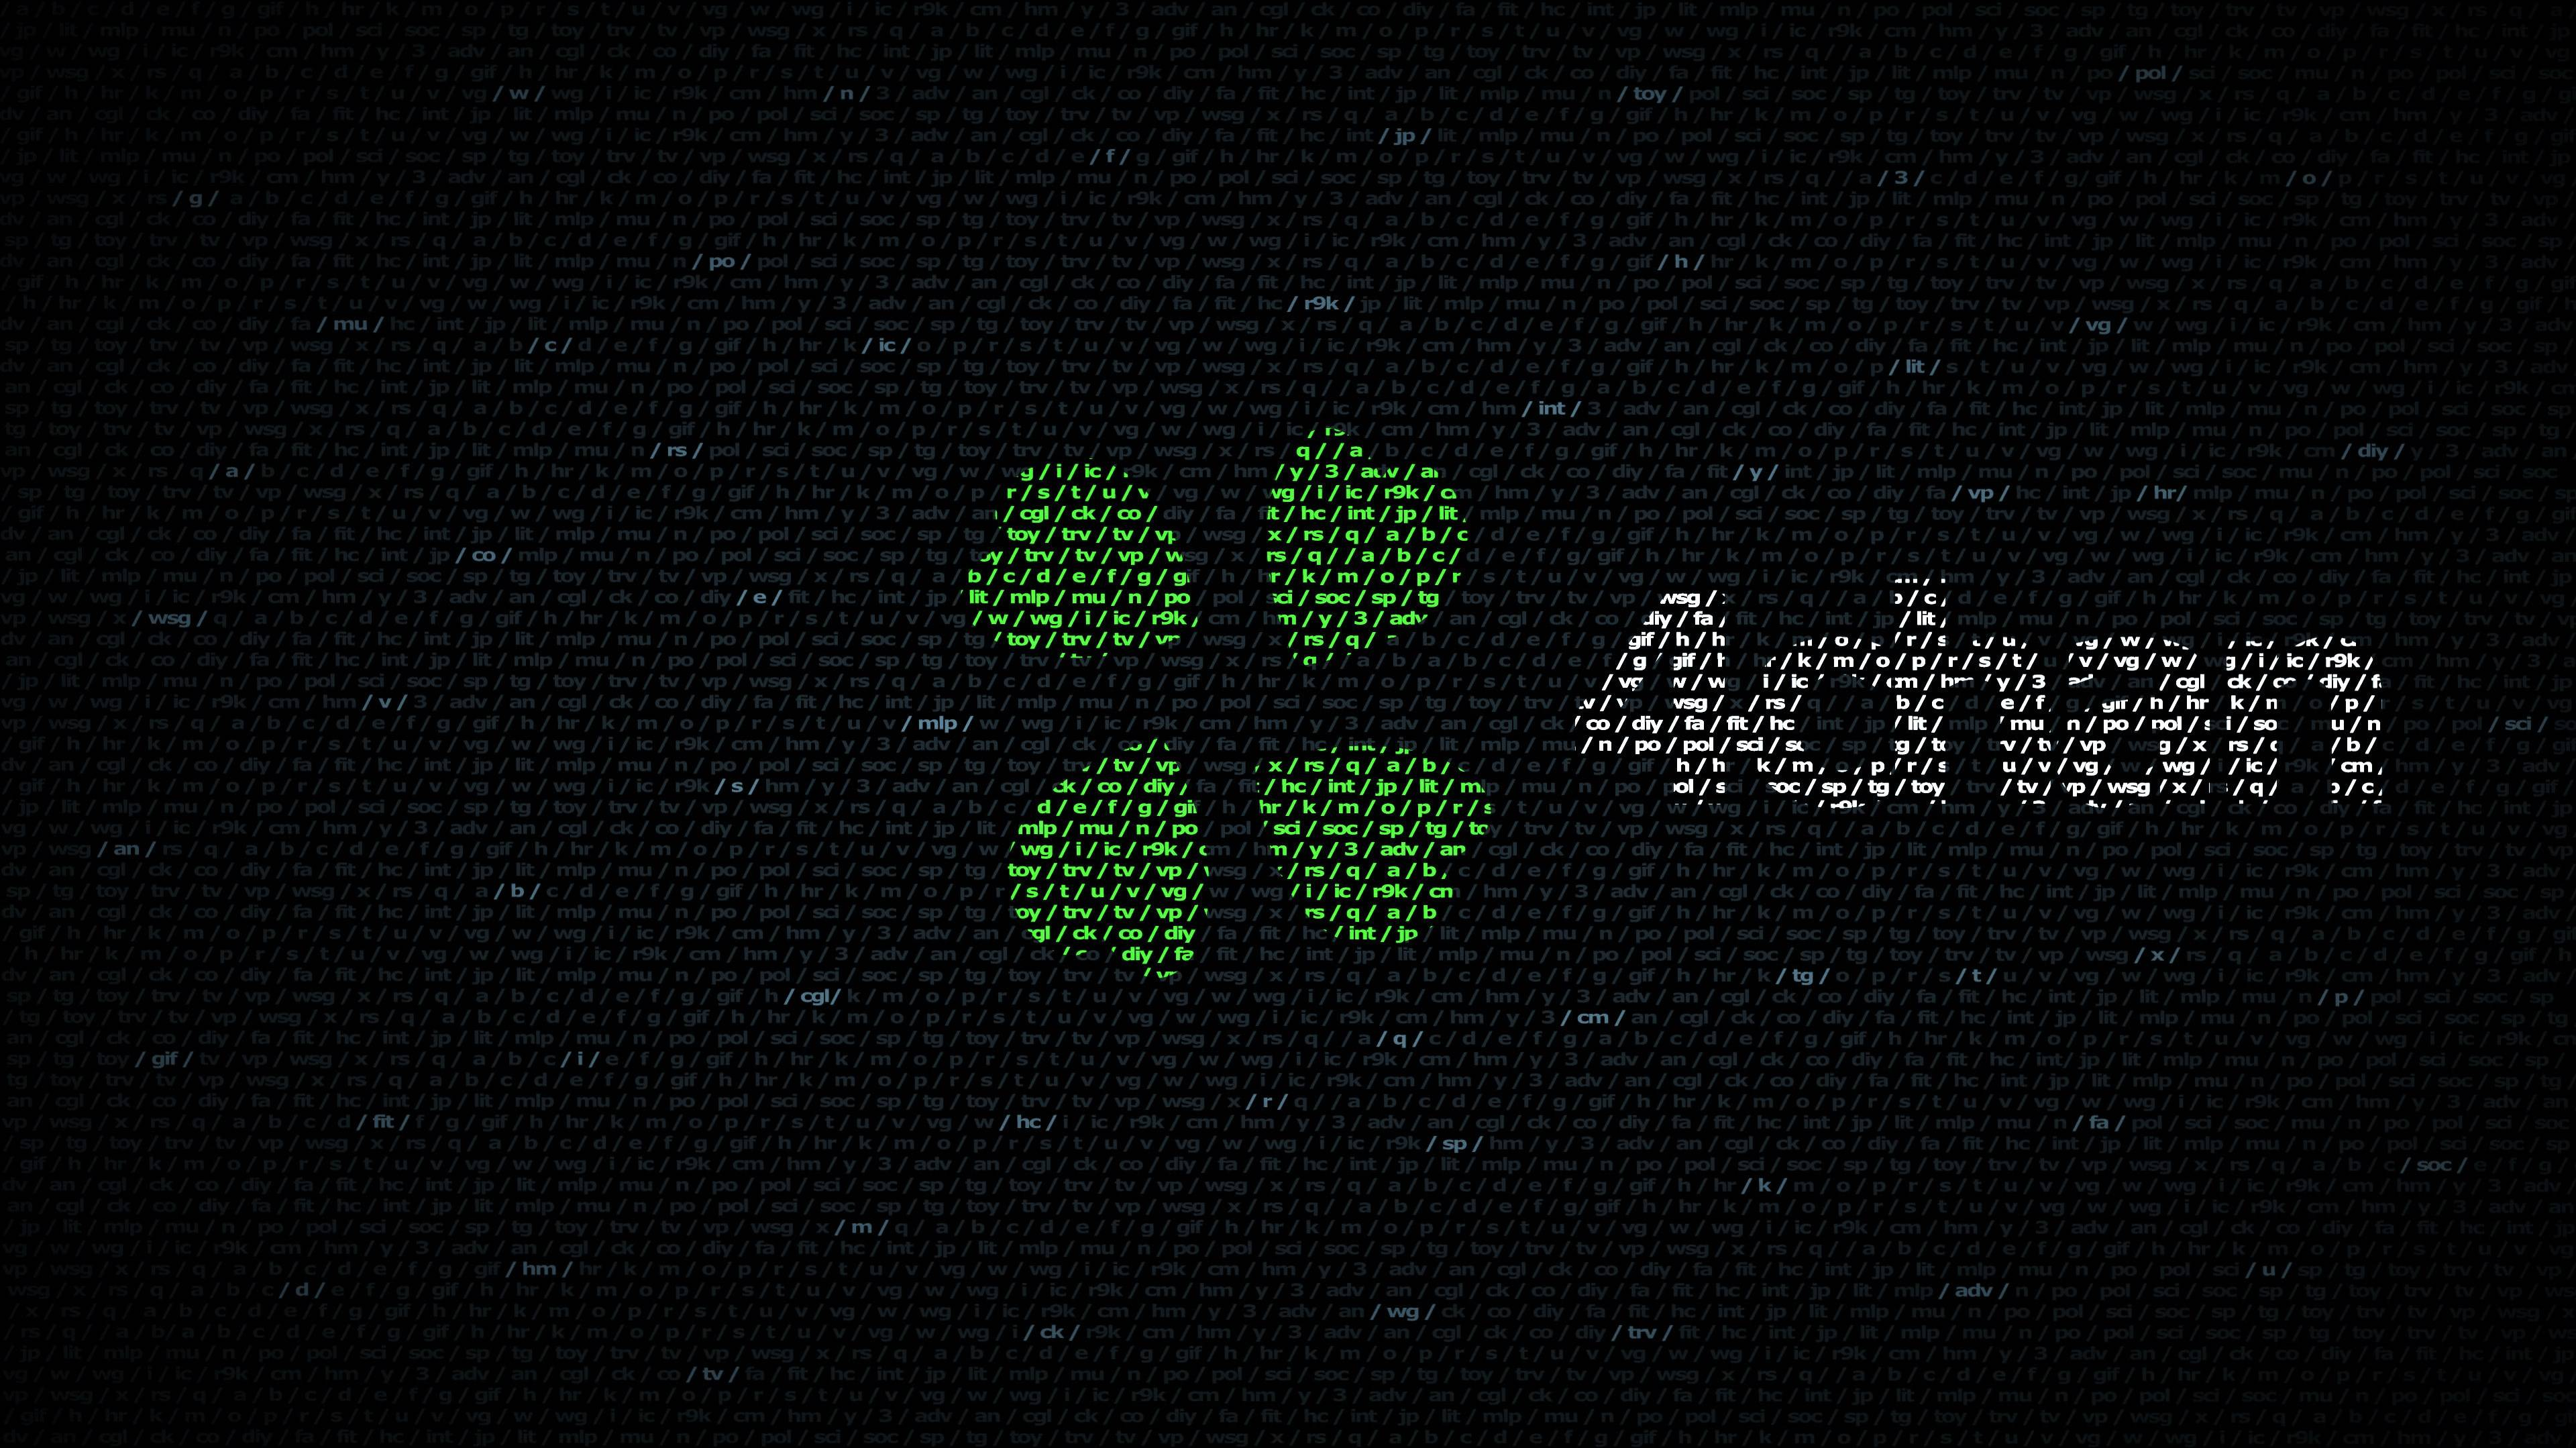 4chan wallpapers